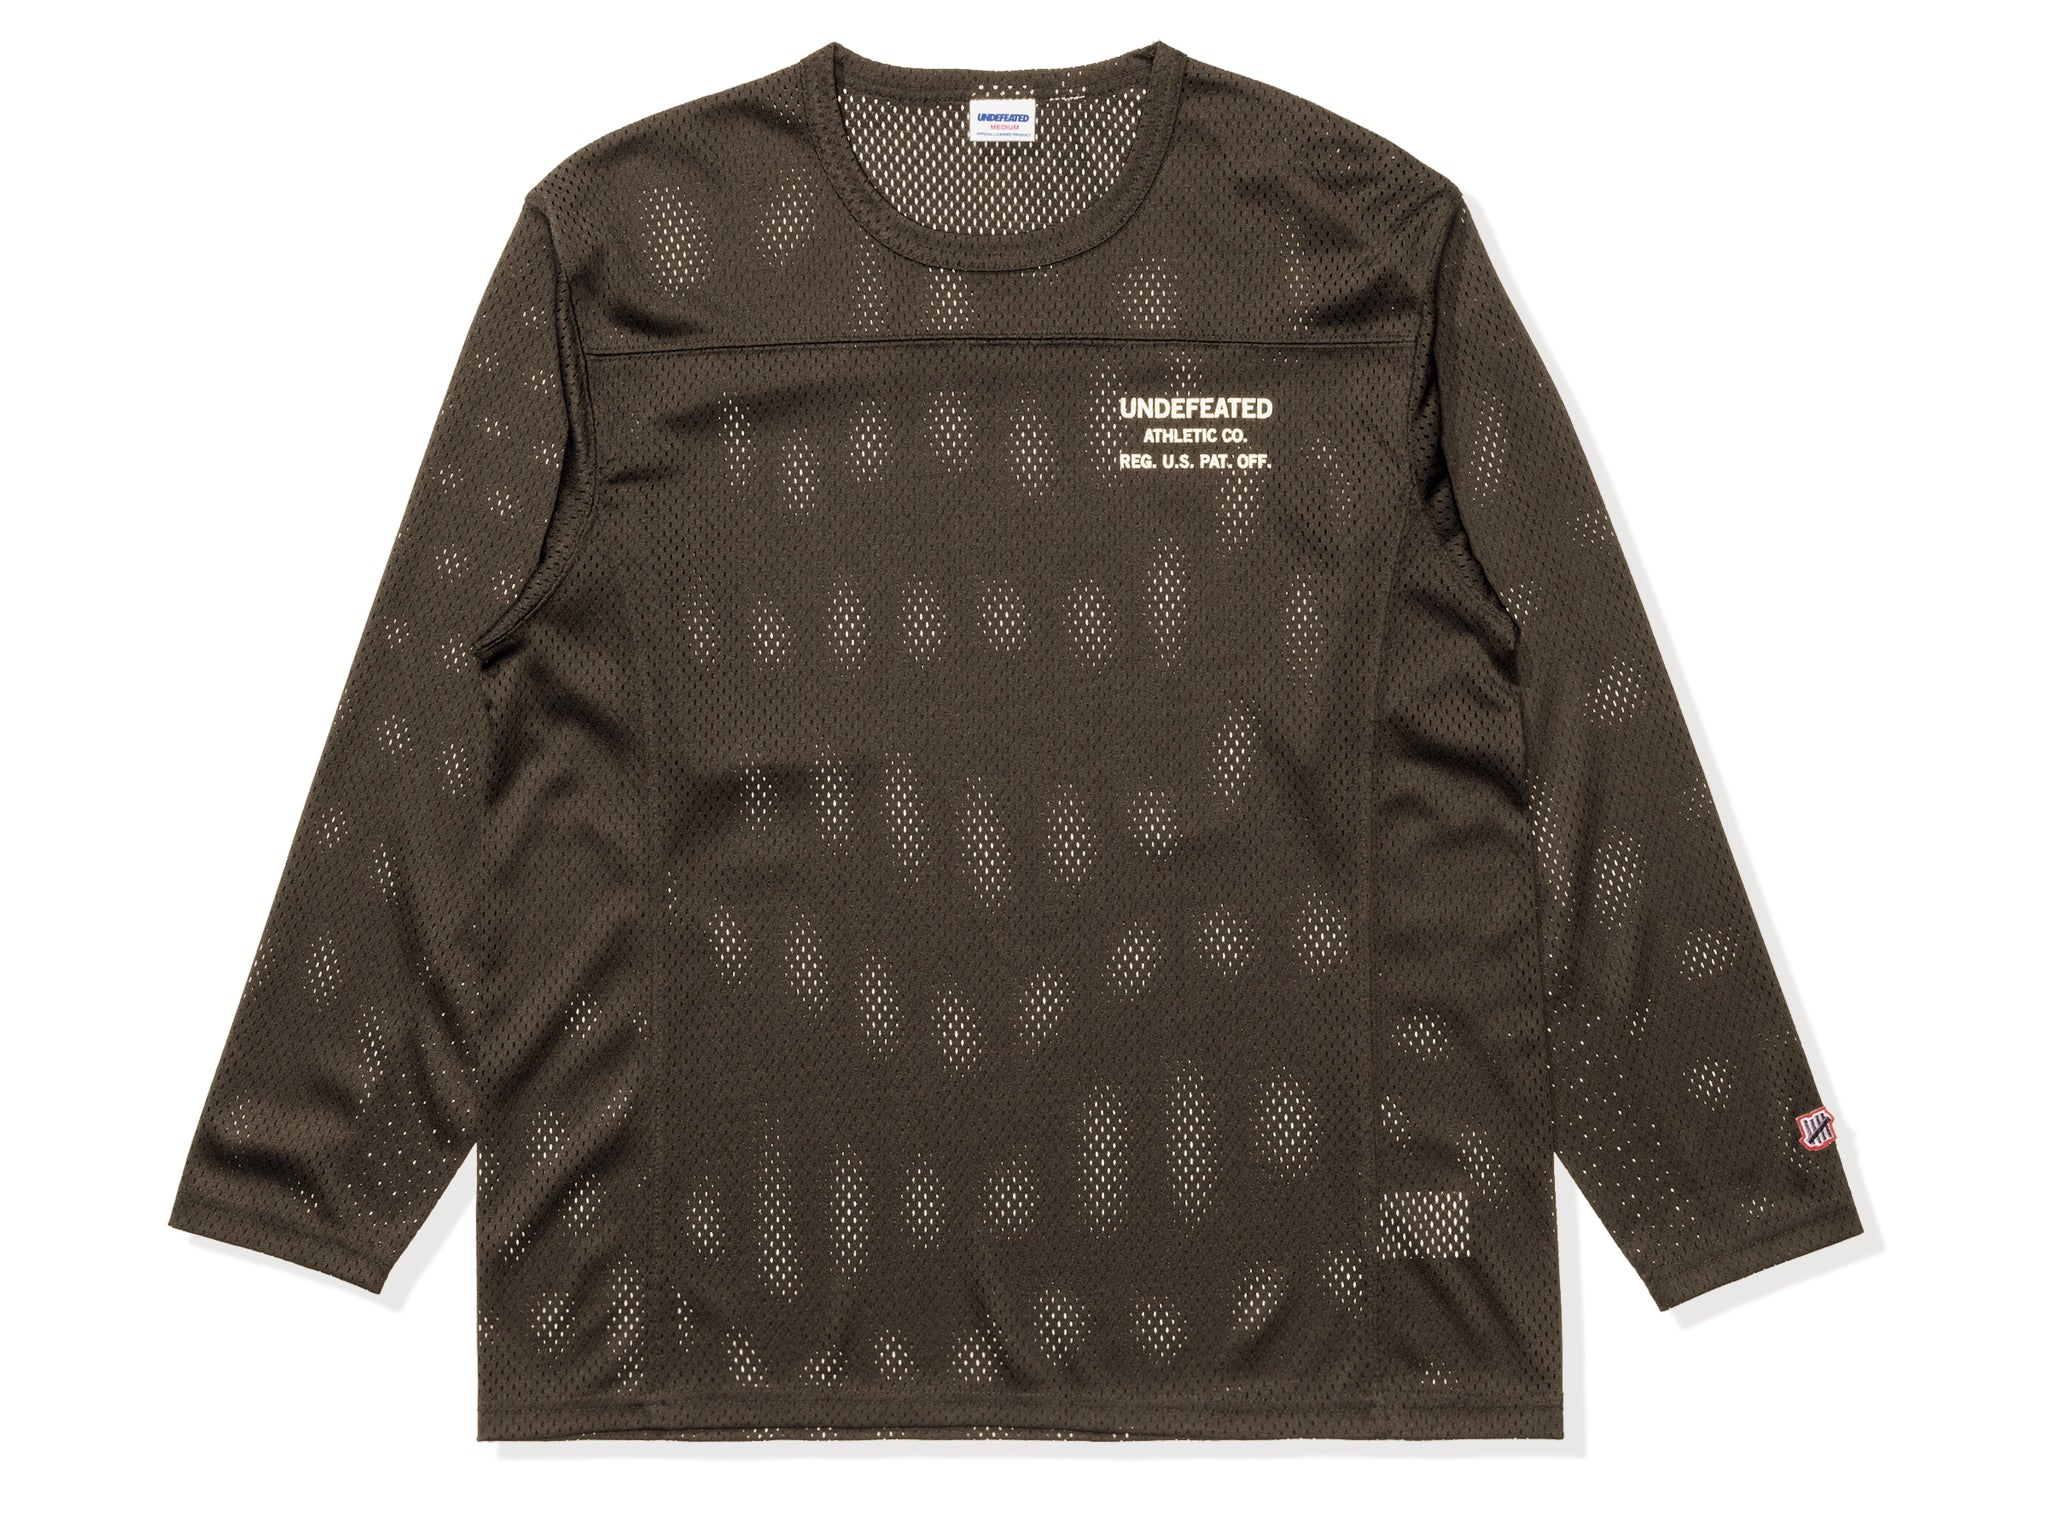 UNDEFEATED L/S PRACTICE JERSEY